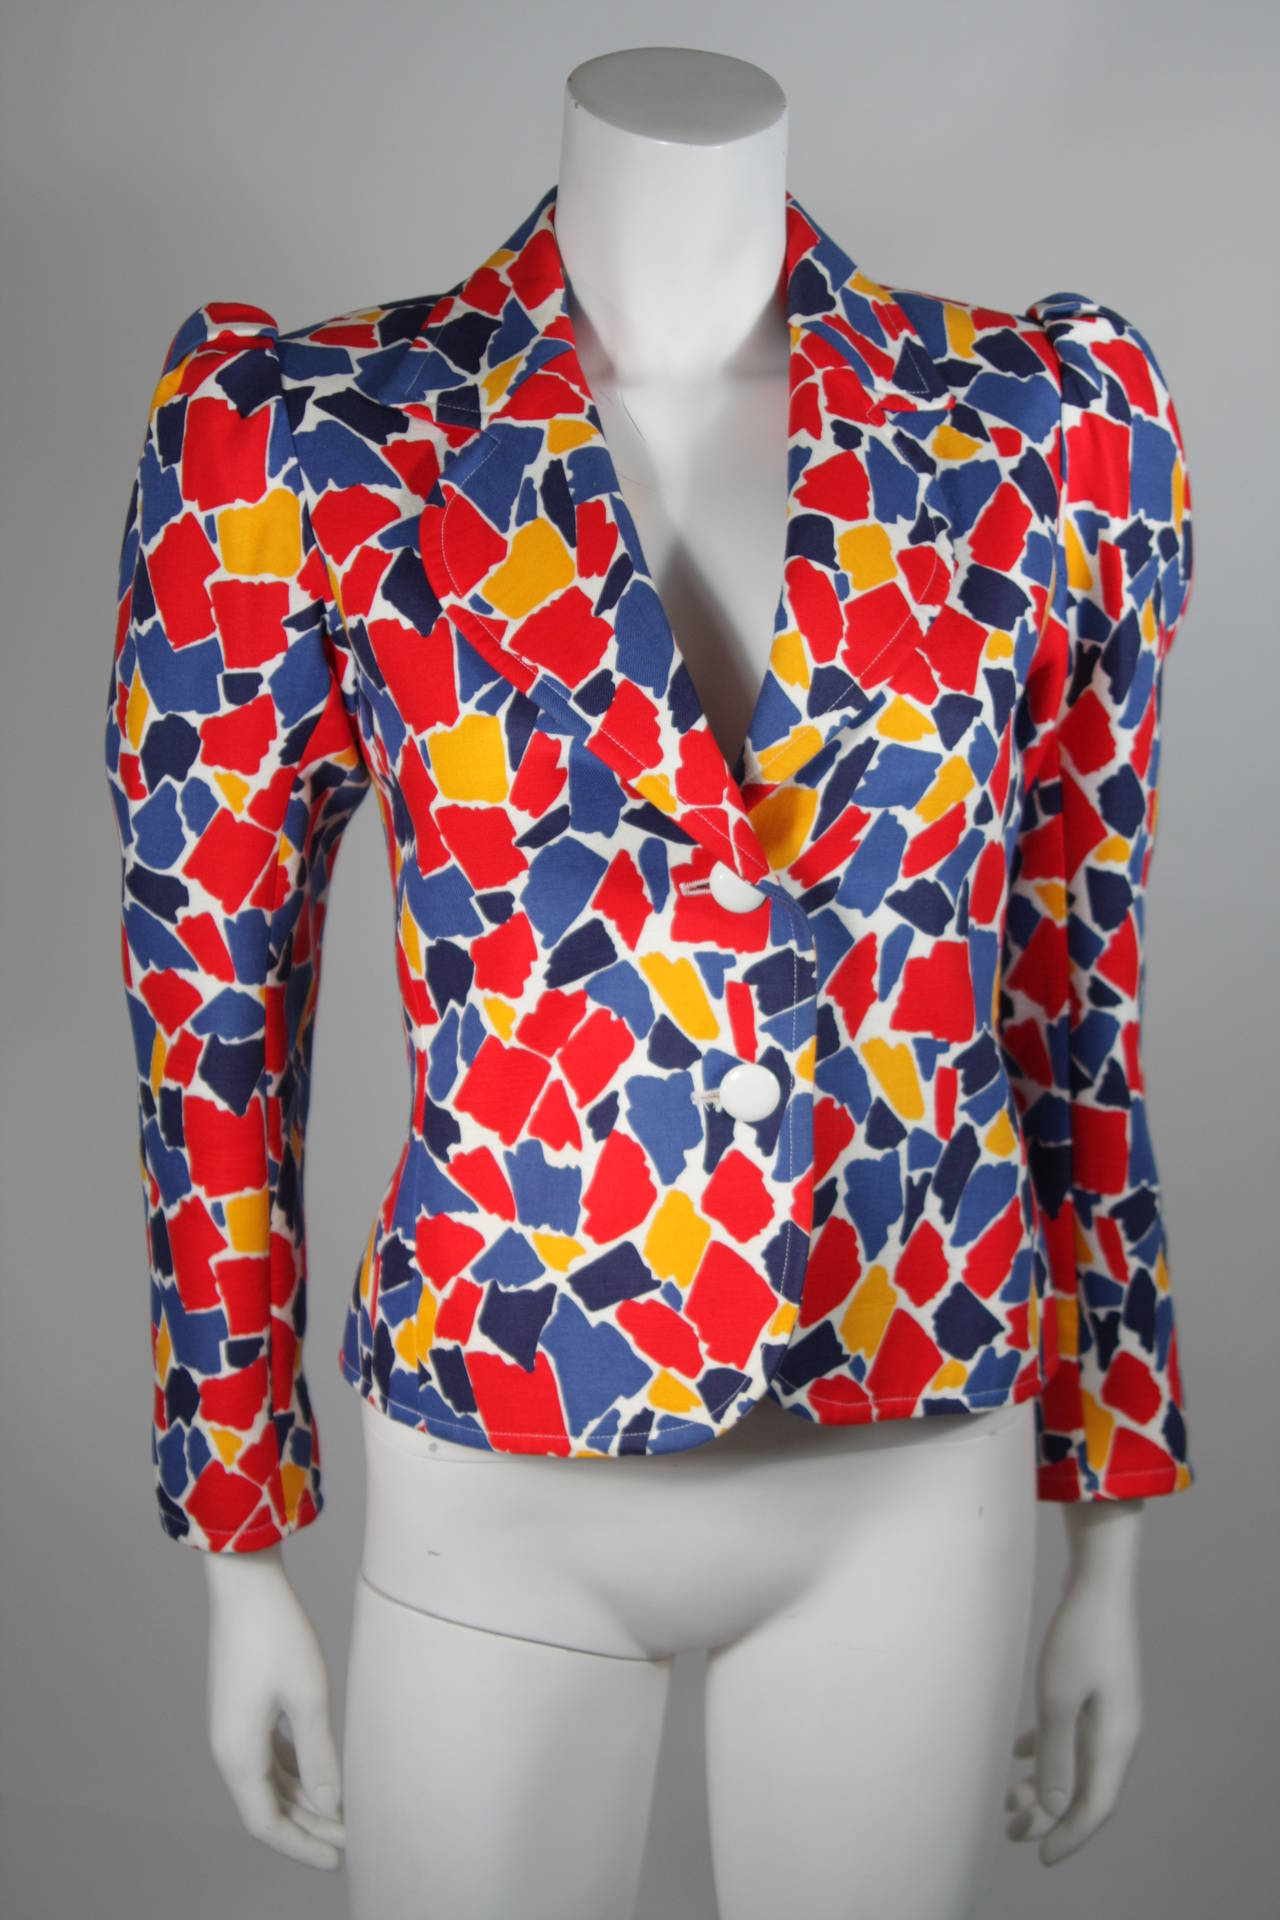 This Yves Saint Laurent jacket is composed of high contrast print in primary colors, for a pop color effect. The sleeves feature a puff style and there are center front button closures. In excellent condition. Made in France. 